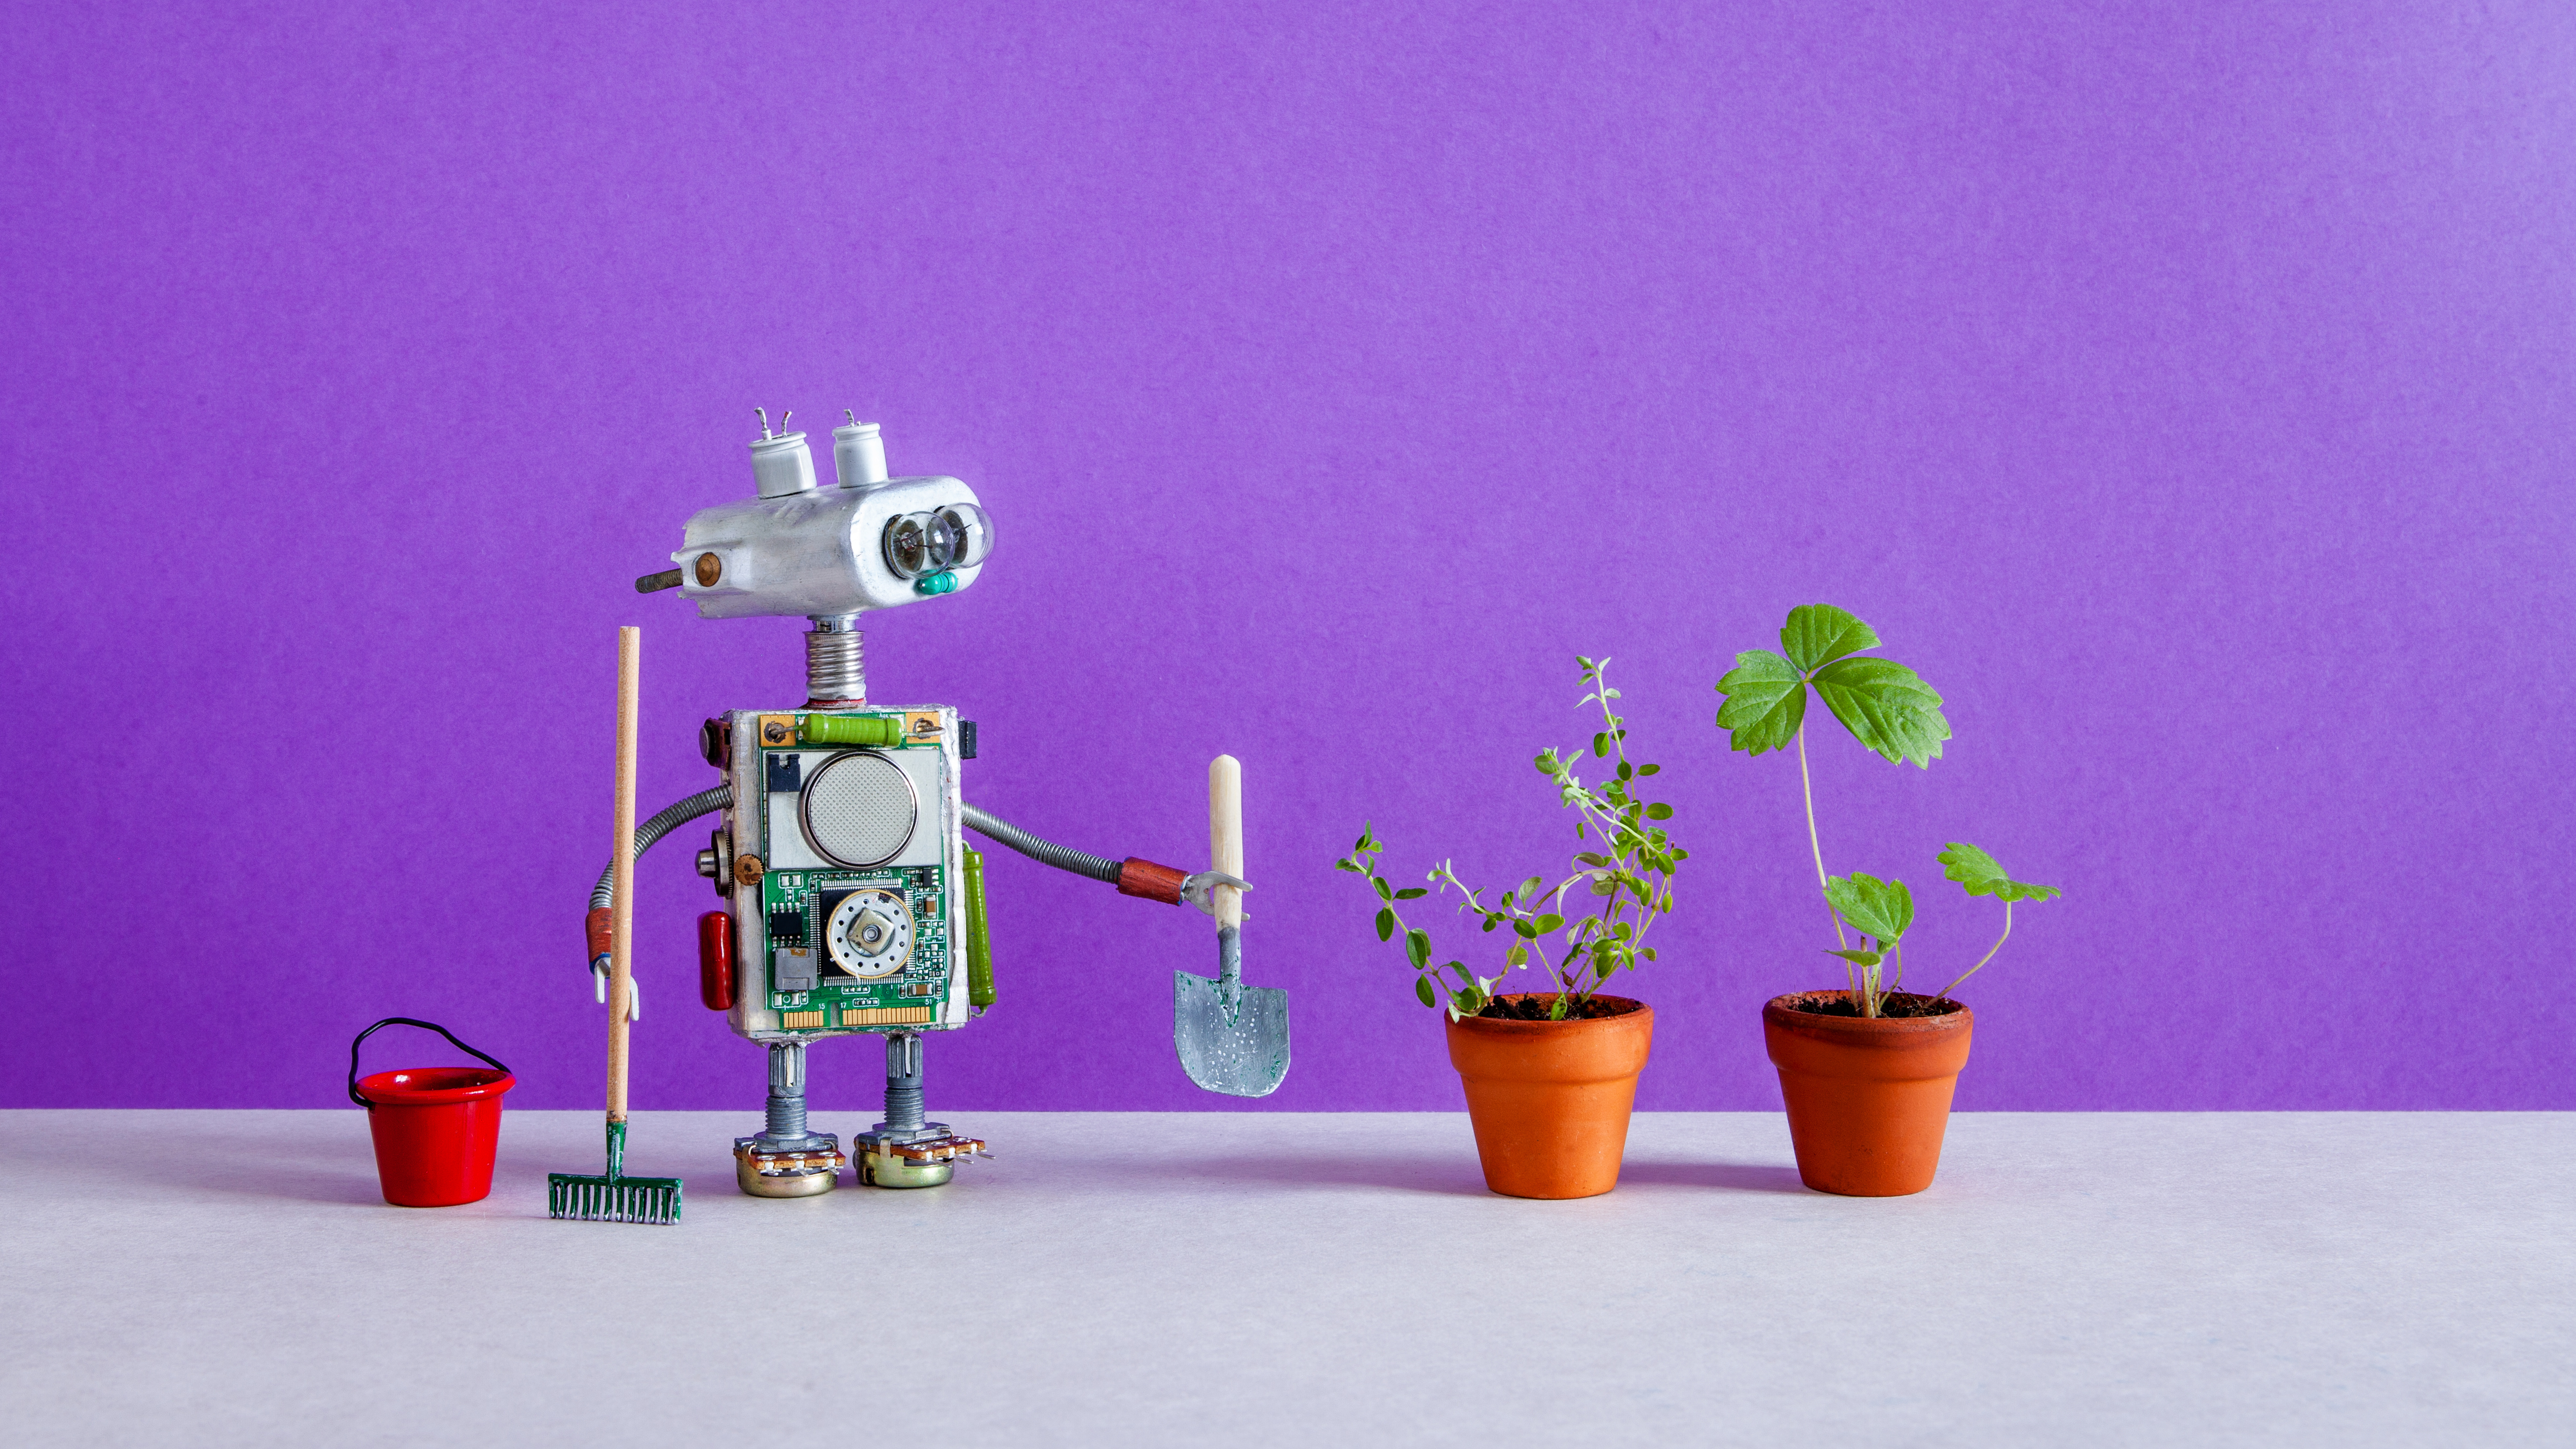 robot-helping-grow-your-business-automated-growth